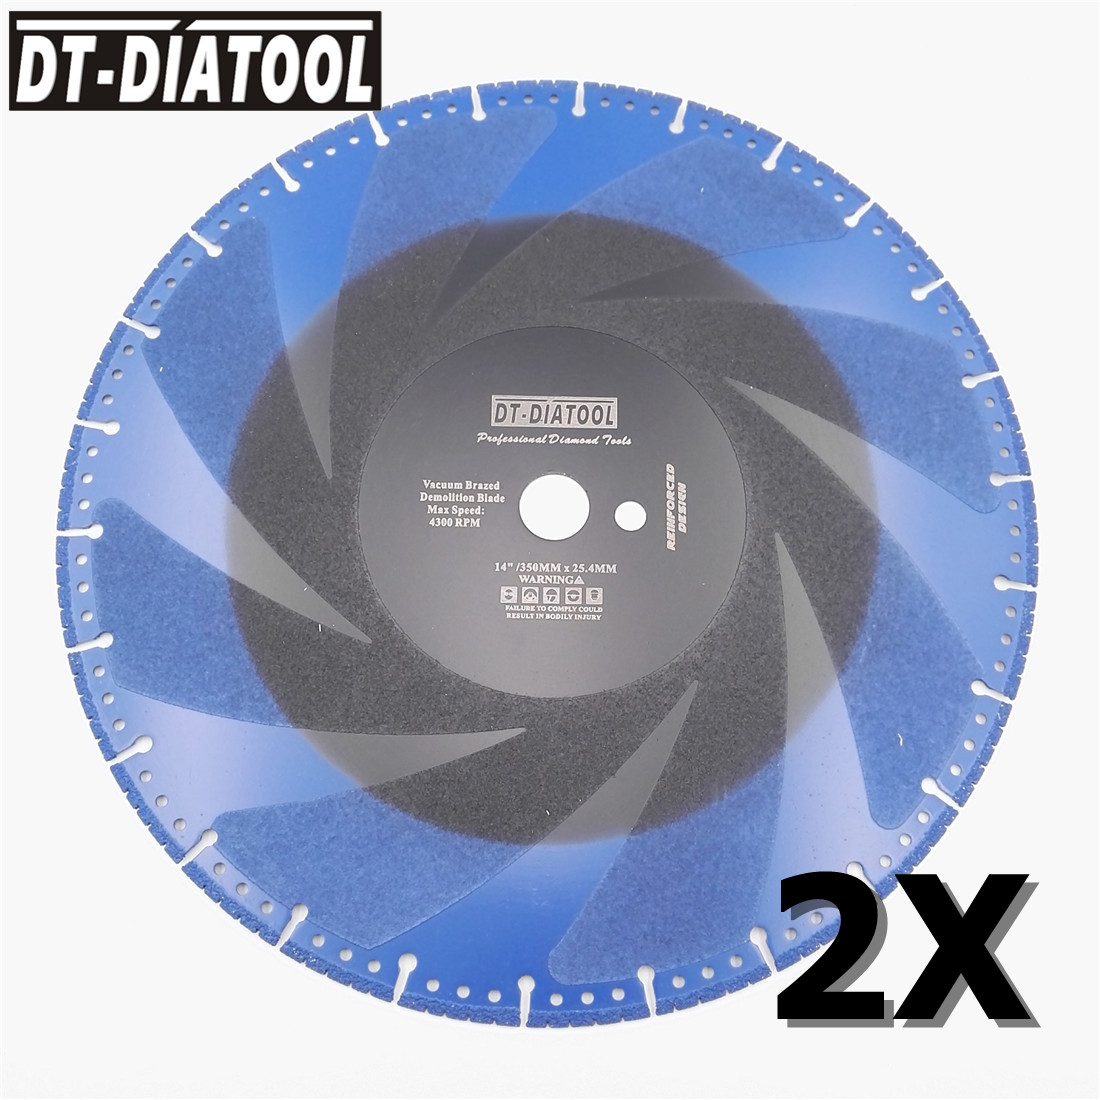 DT DIATOOL 2pcs 350mm/14 Vacuum Brazed Diamond Cutting Disc one for all Blade Rescue Saw Blade Cast Iron rebar Steel Pipe Stone